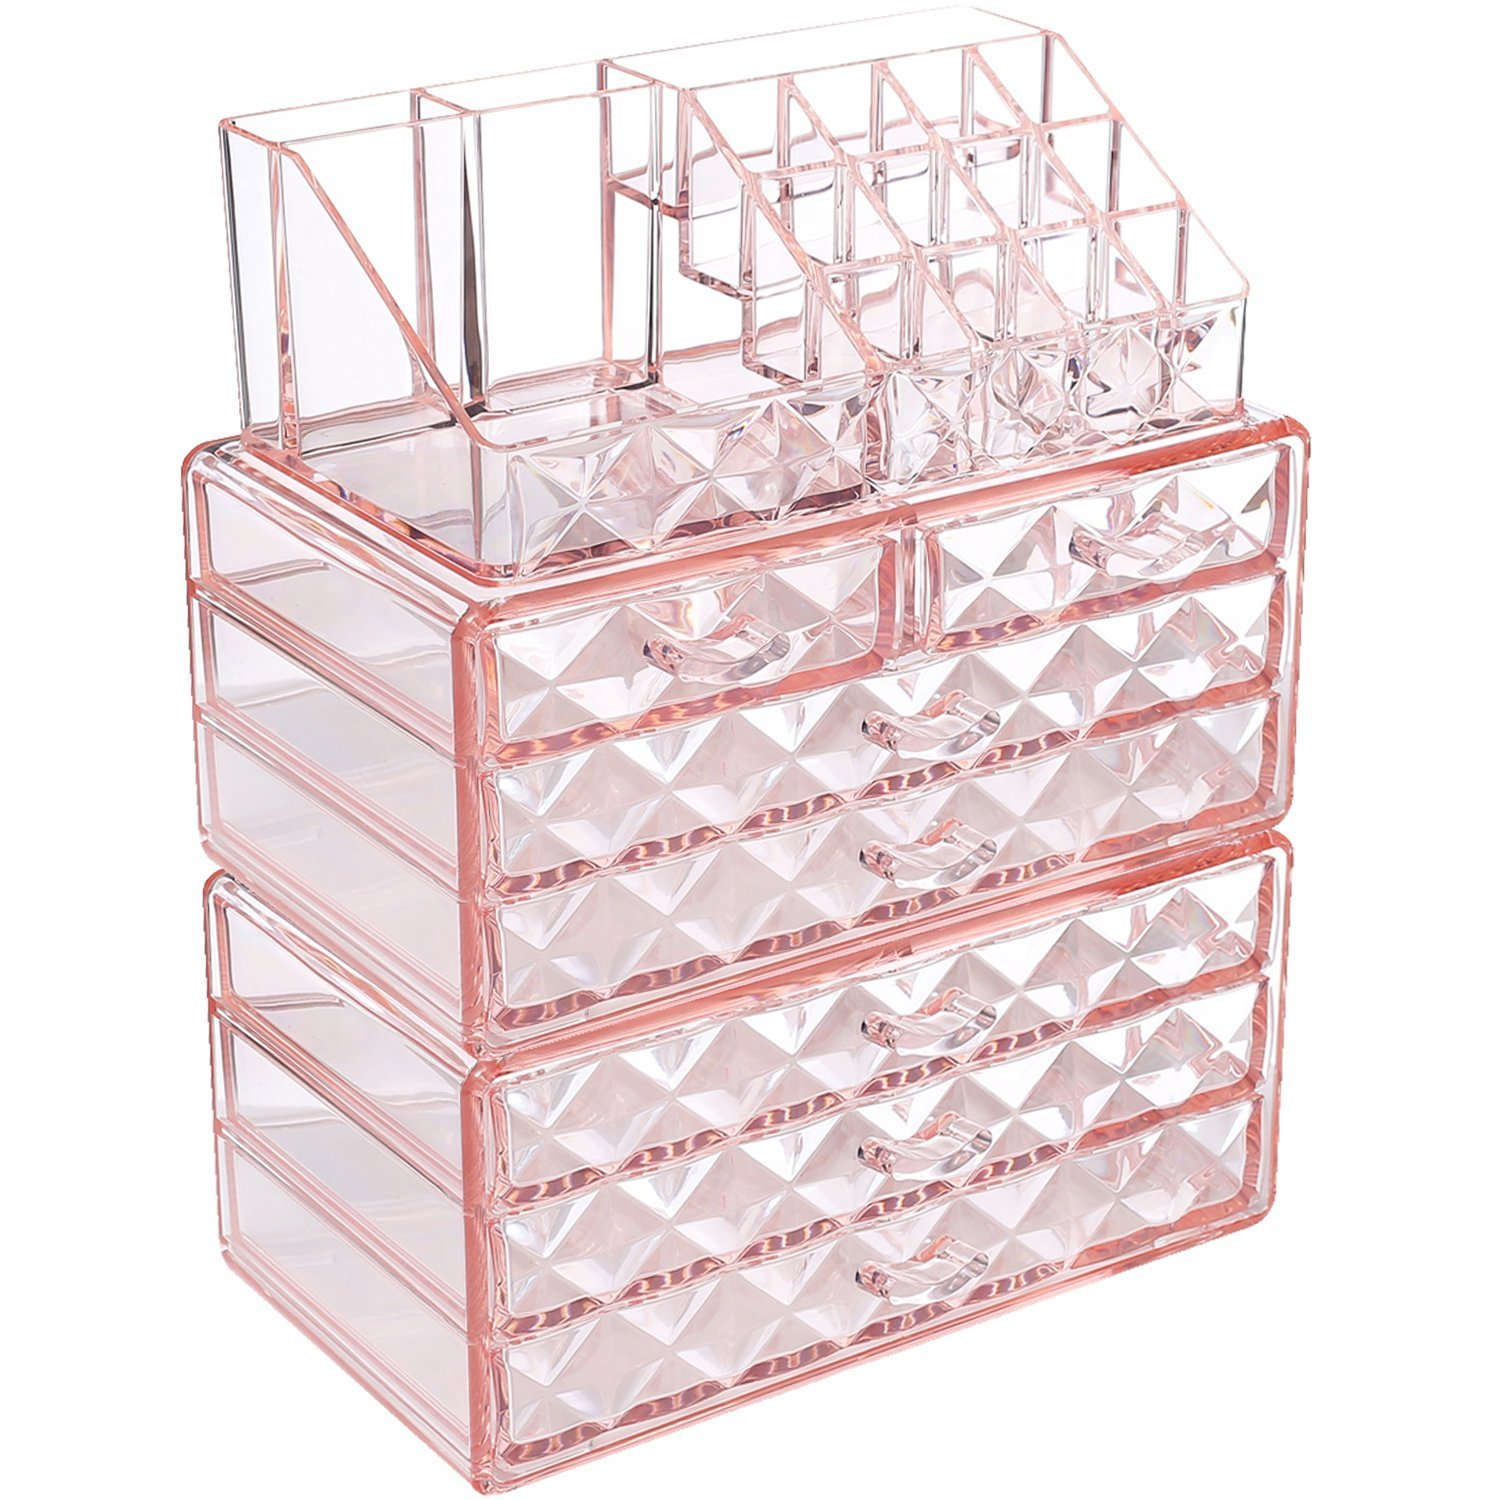 """Ikee Design Diamond Pattern Jewelry Cosmetic Storage Display Boxes, 3 Pieces Set, Cosmetic Jewelry Organizer Makeup Holder, Cosmetic Holder 9 3/8""""W x 5 3/8""""D x 11 3/5""""H, Pink"""